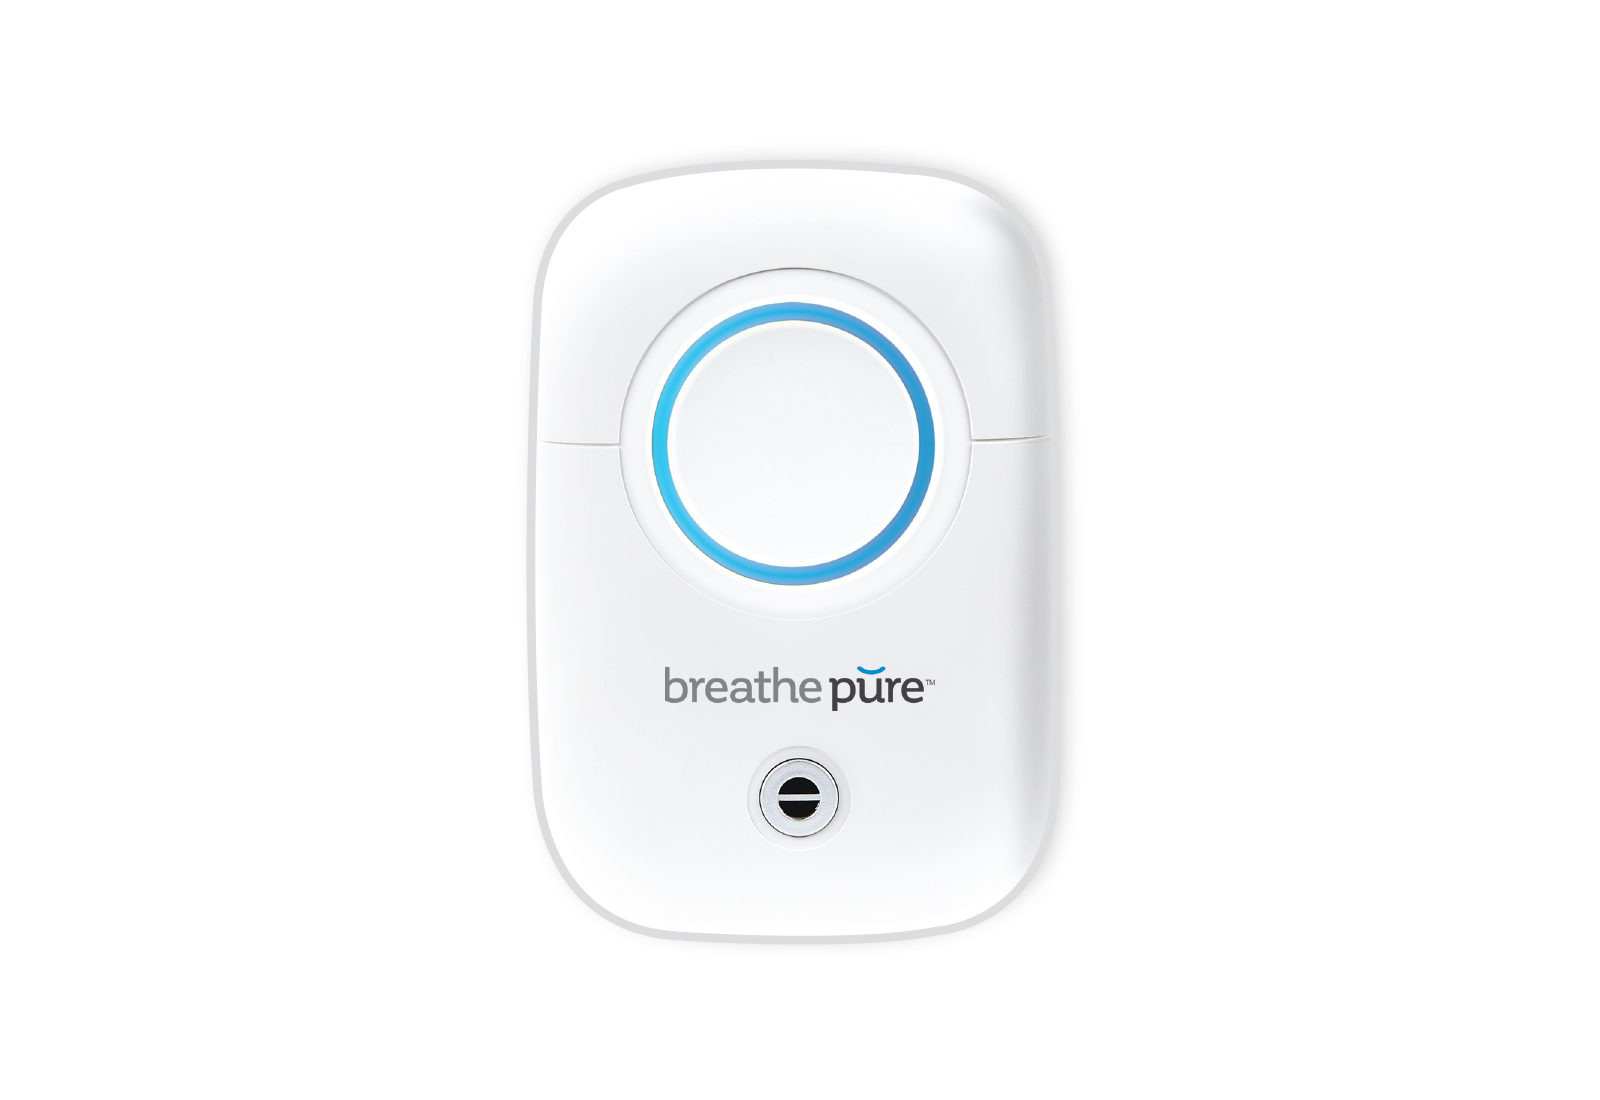 Breath Pure Product Image